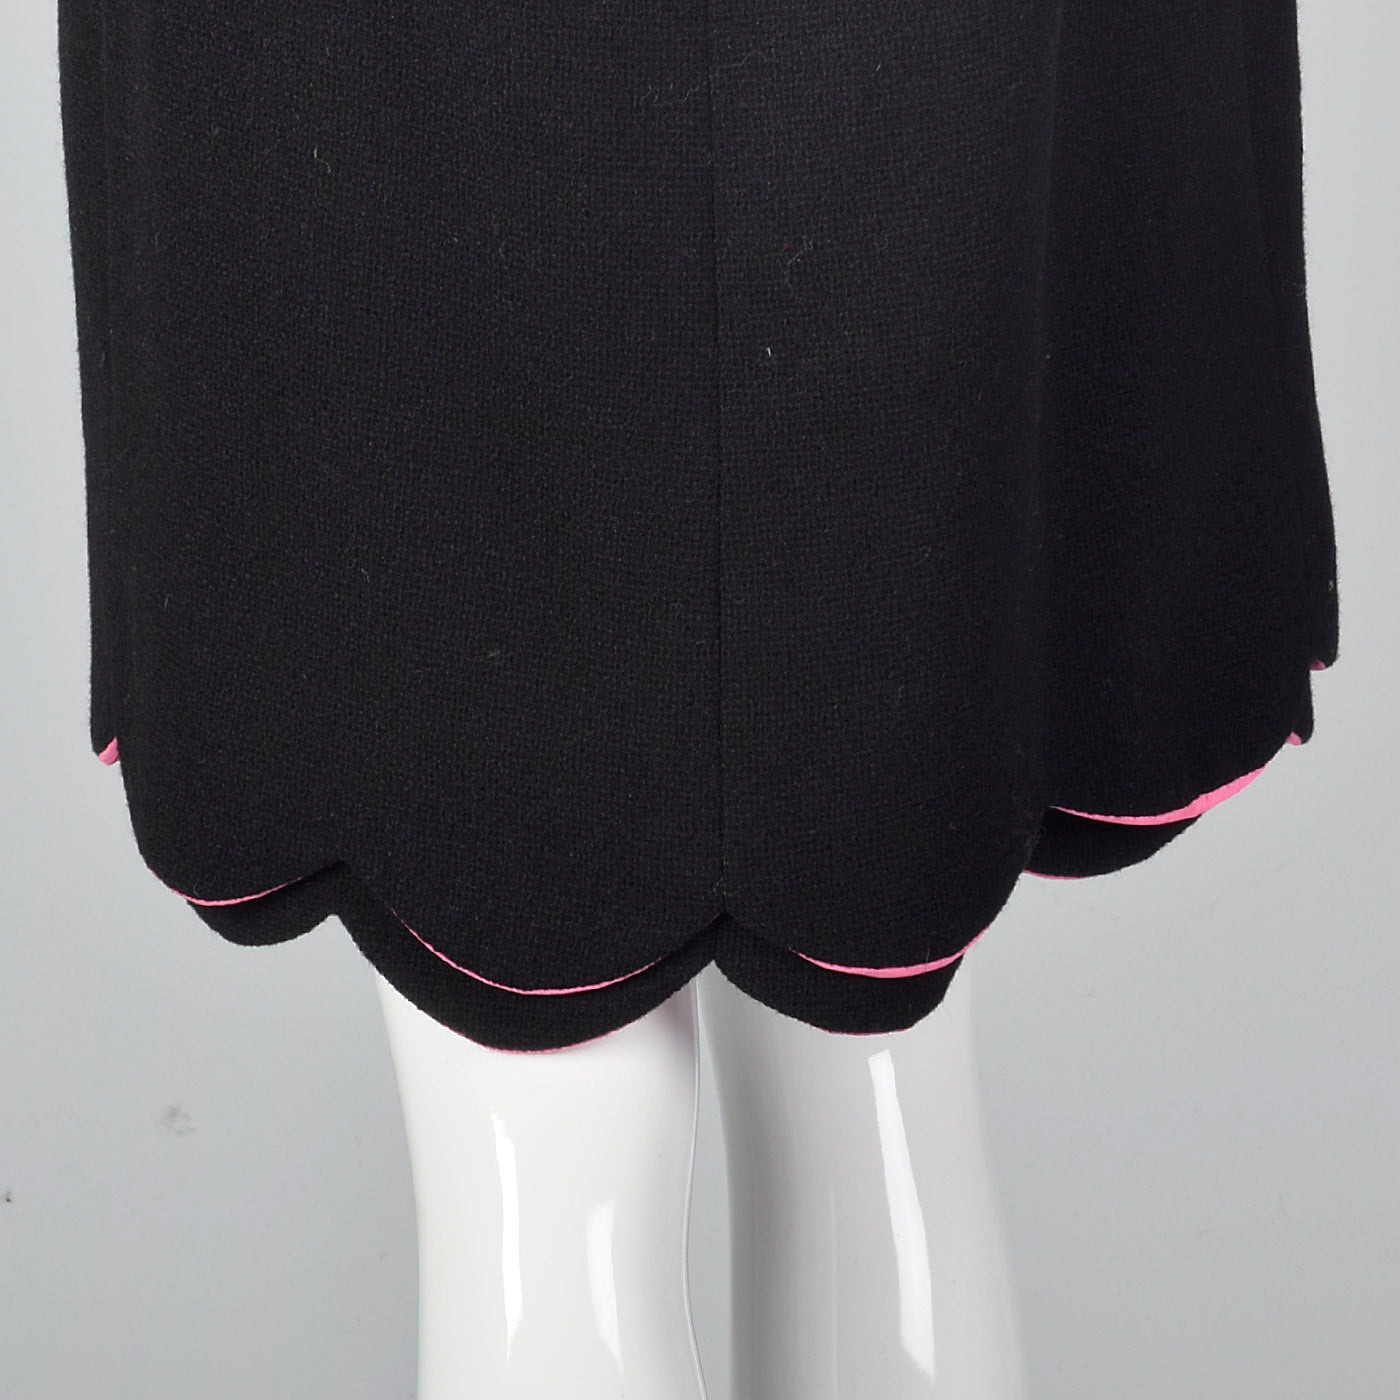 1960s Black Wool Dress with Pink Trim and Scallop Hem